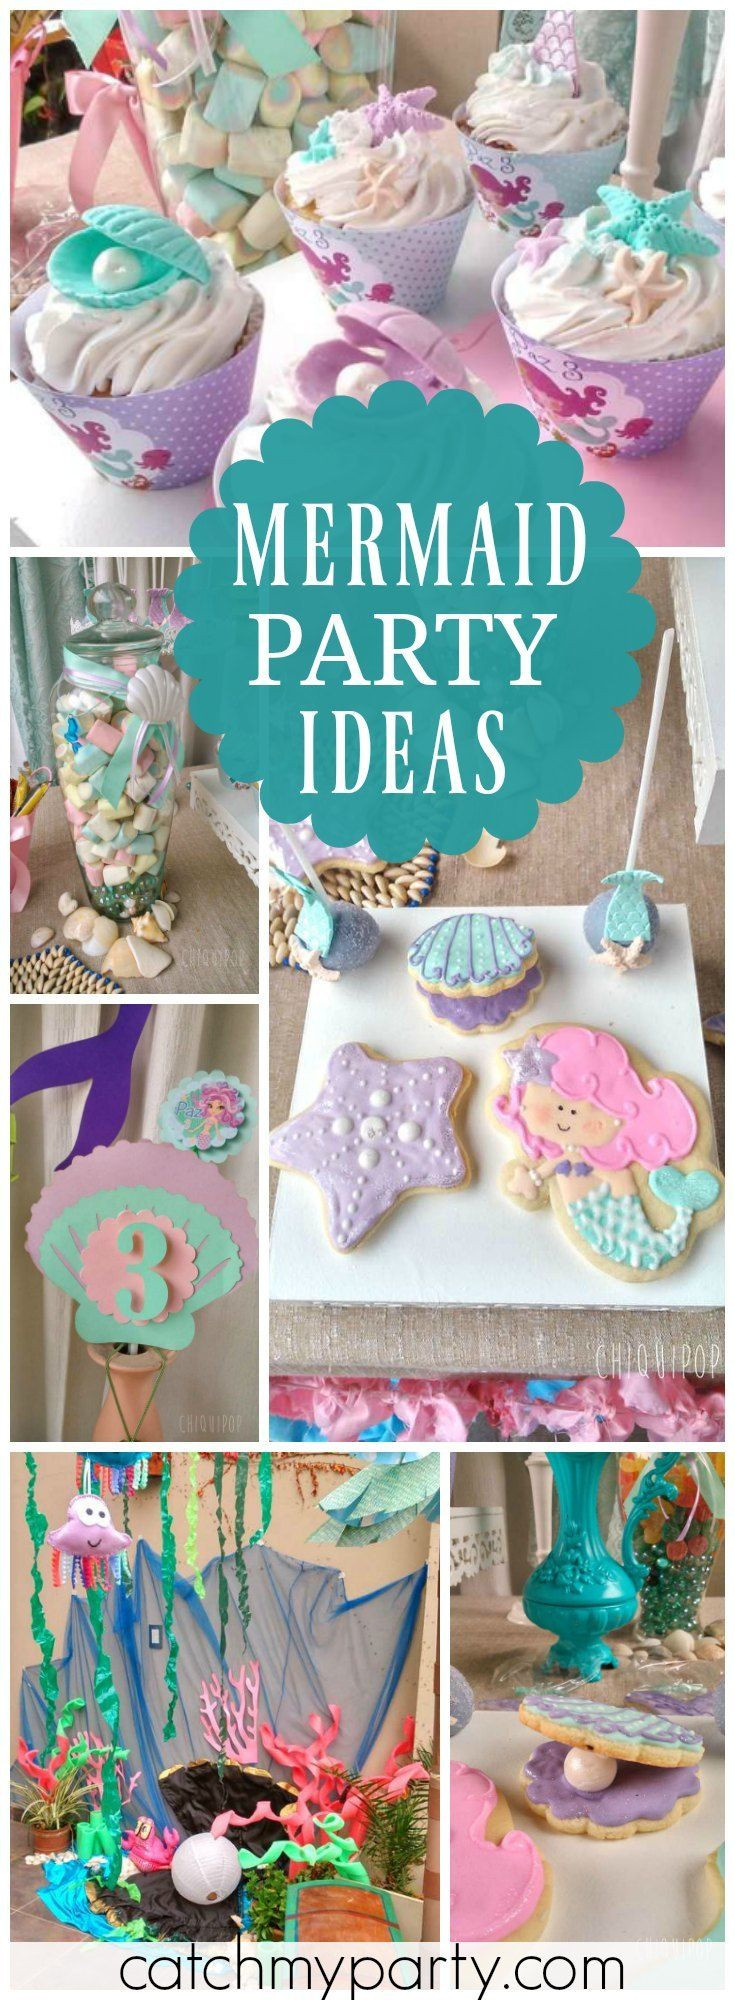 Pinterest Mermaid Party Ideas  1000 images about Mermaid Party Ideas on Pinterest